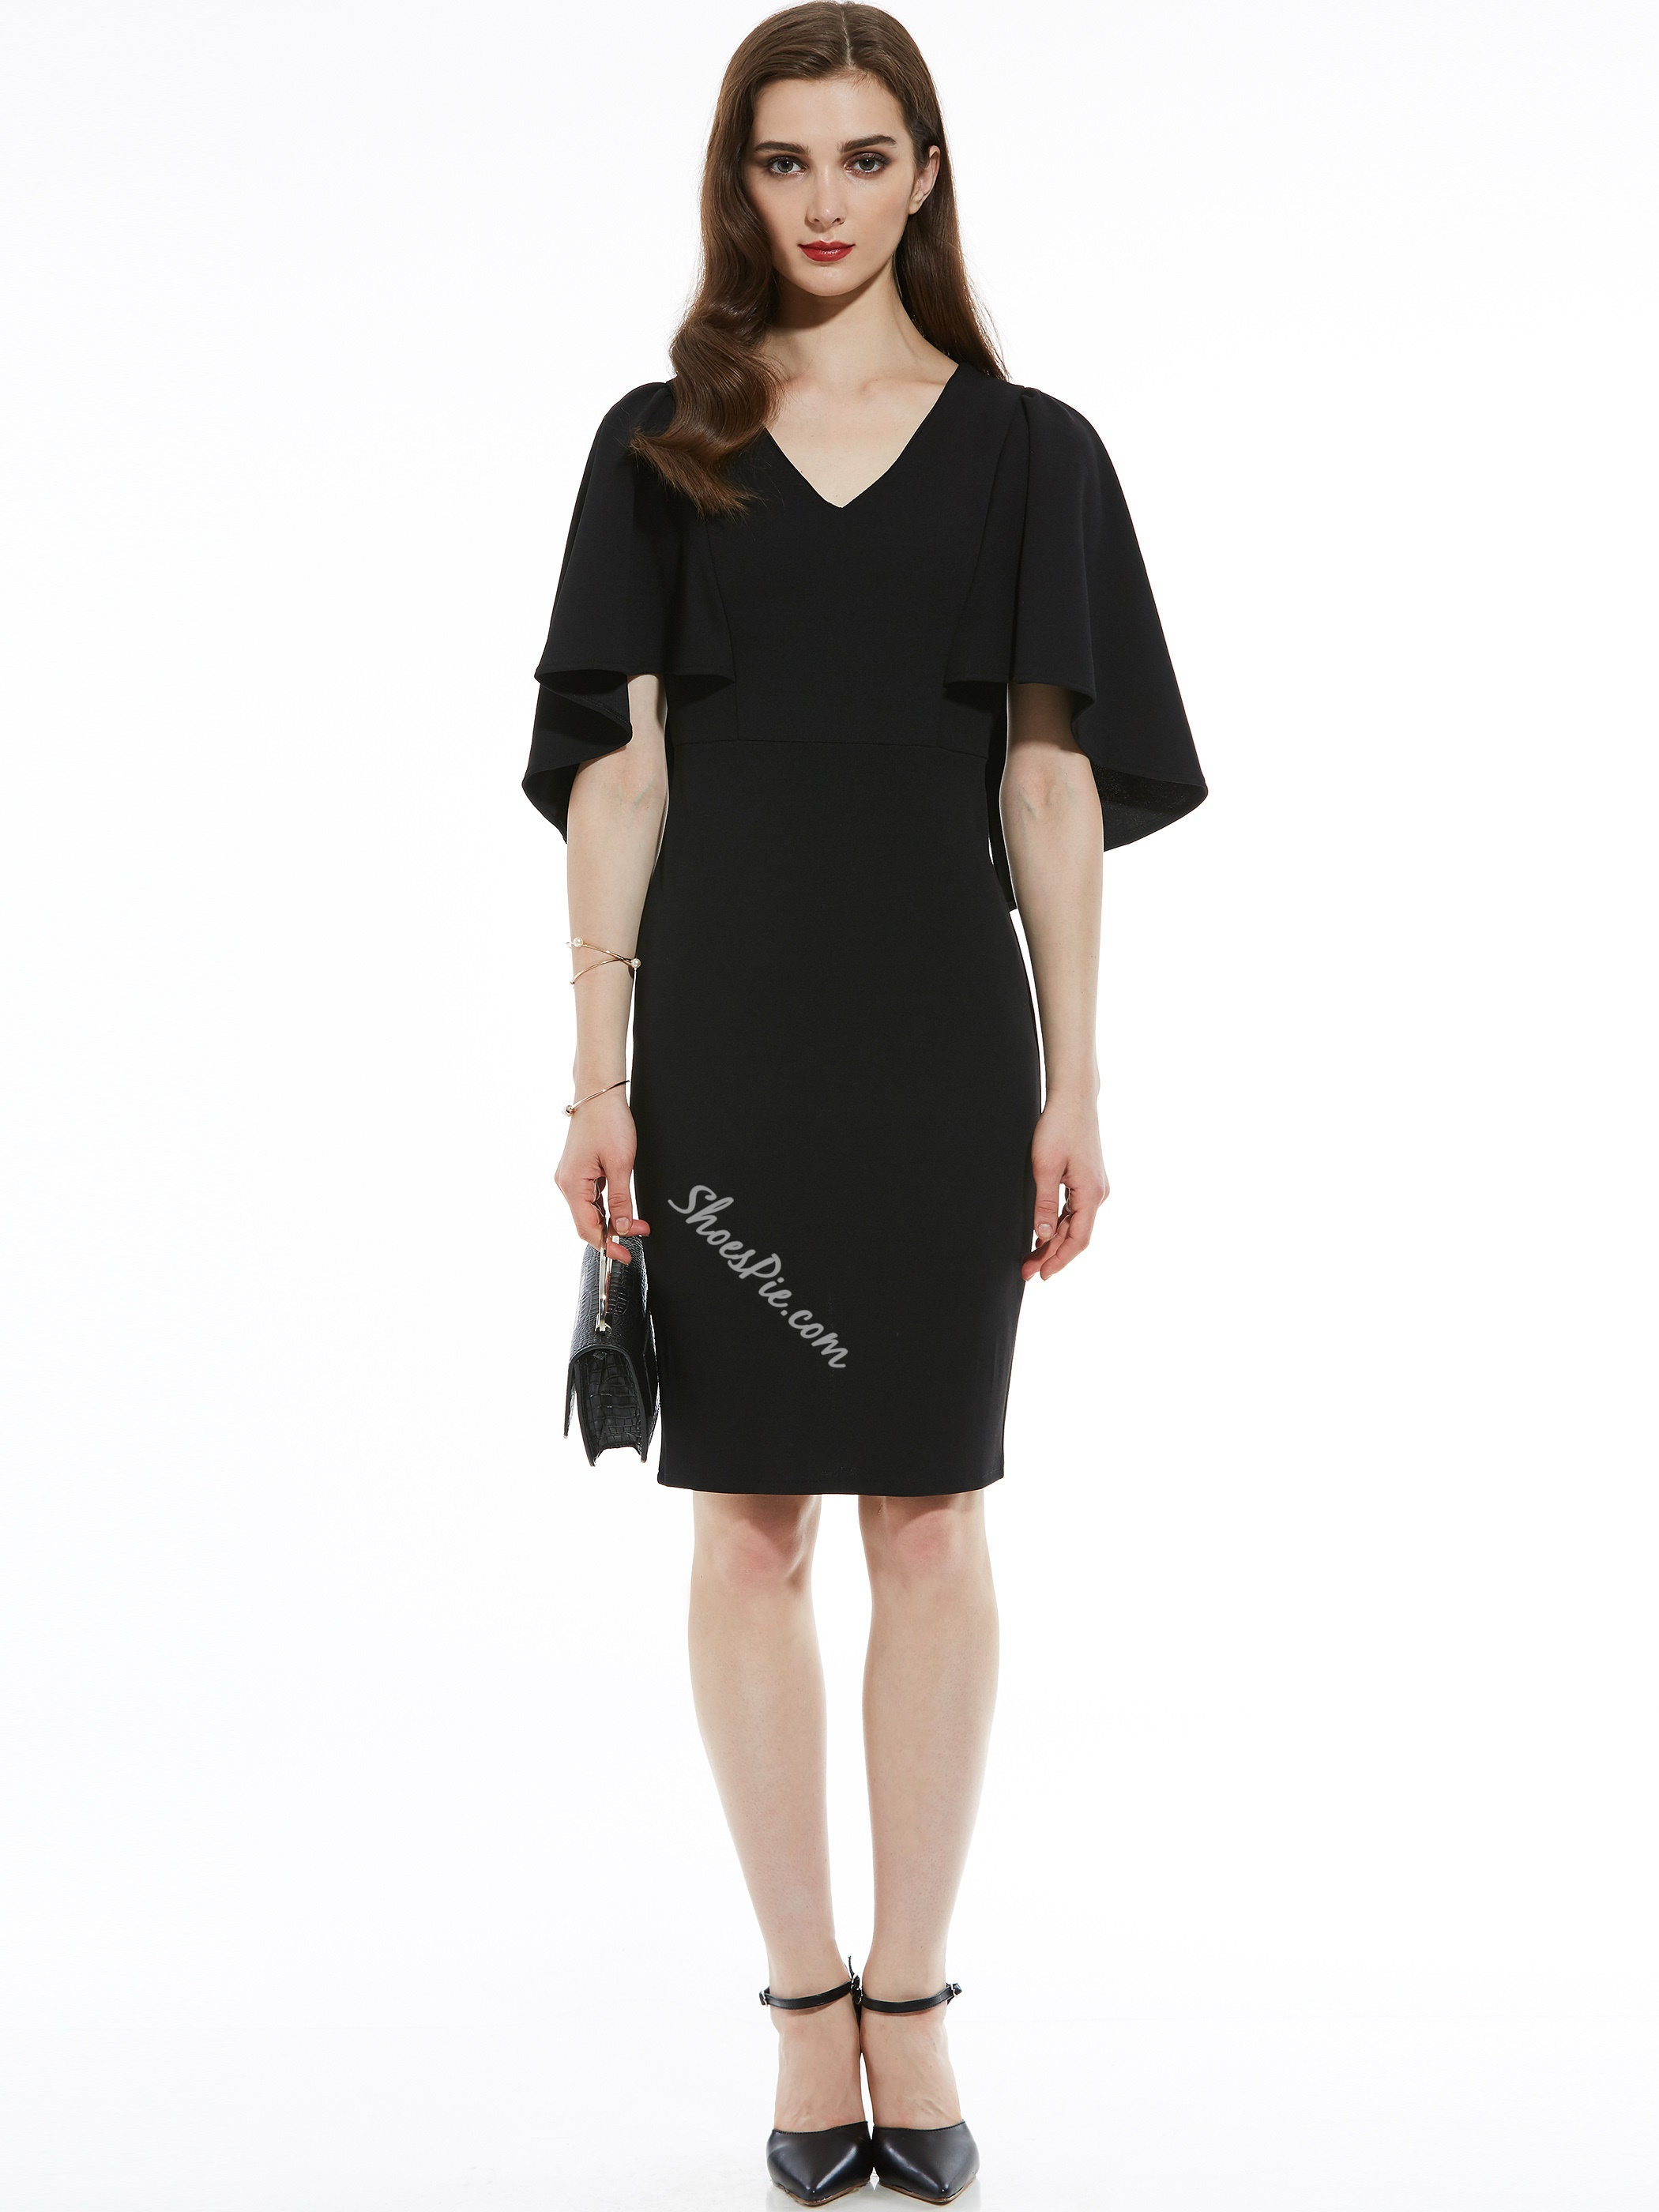 V-Neck Batwing Sleeve Women's Pencil Dress